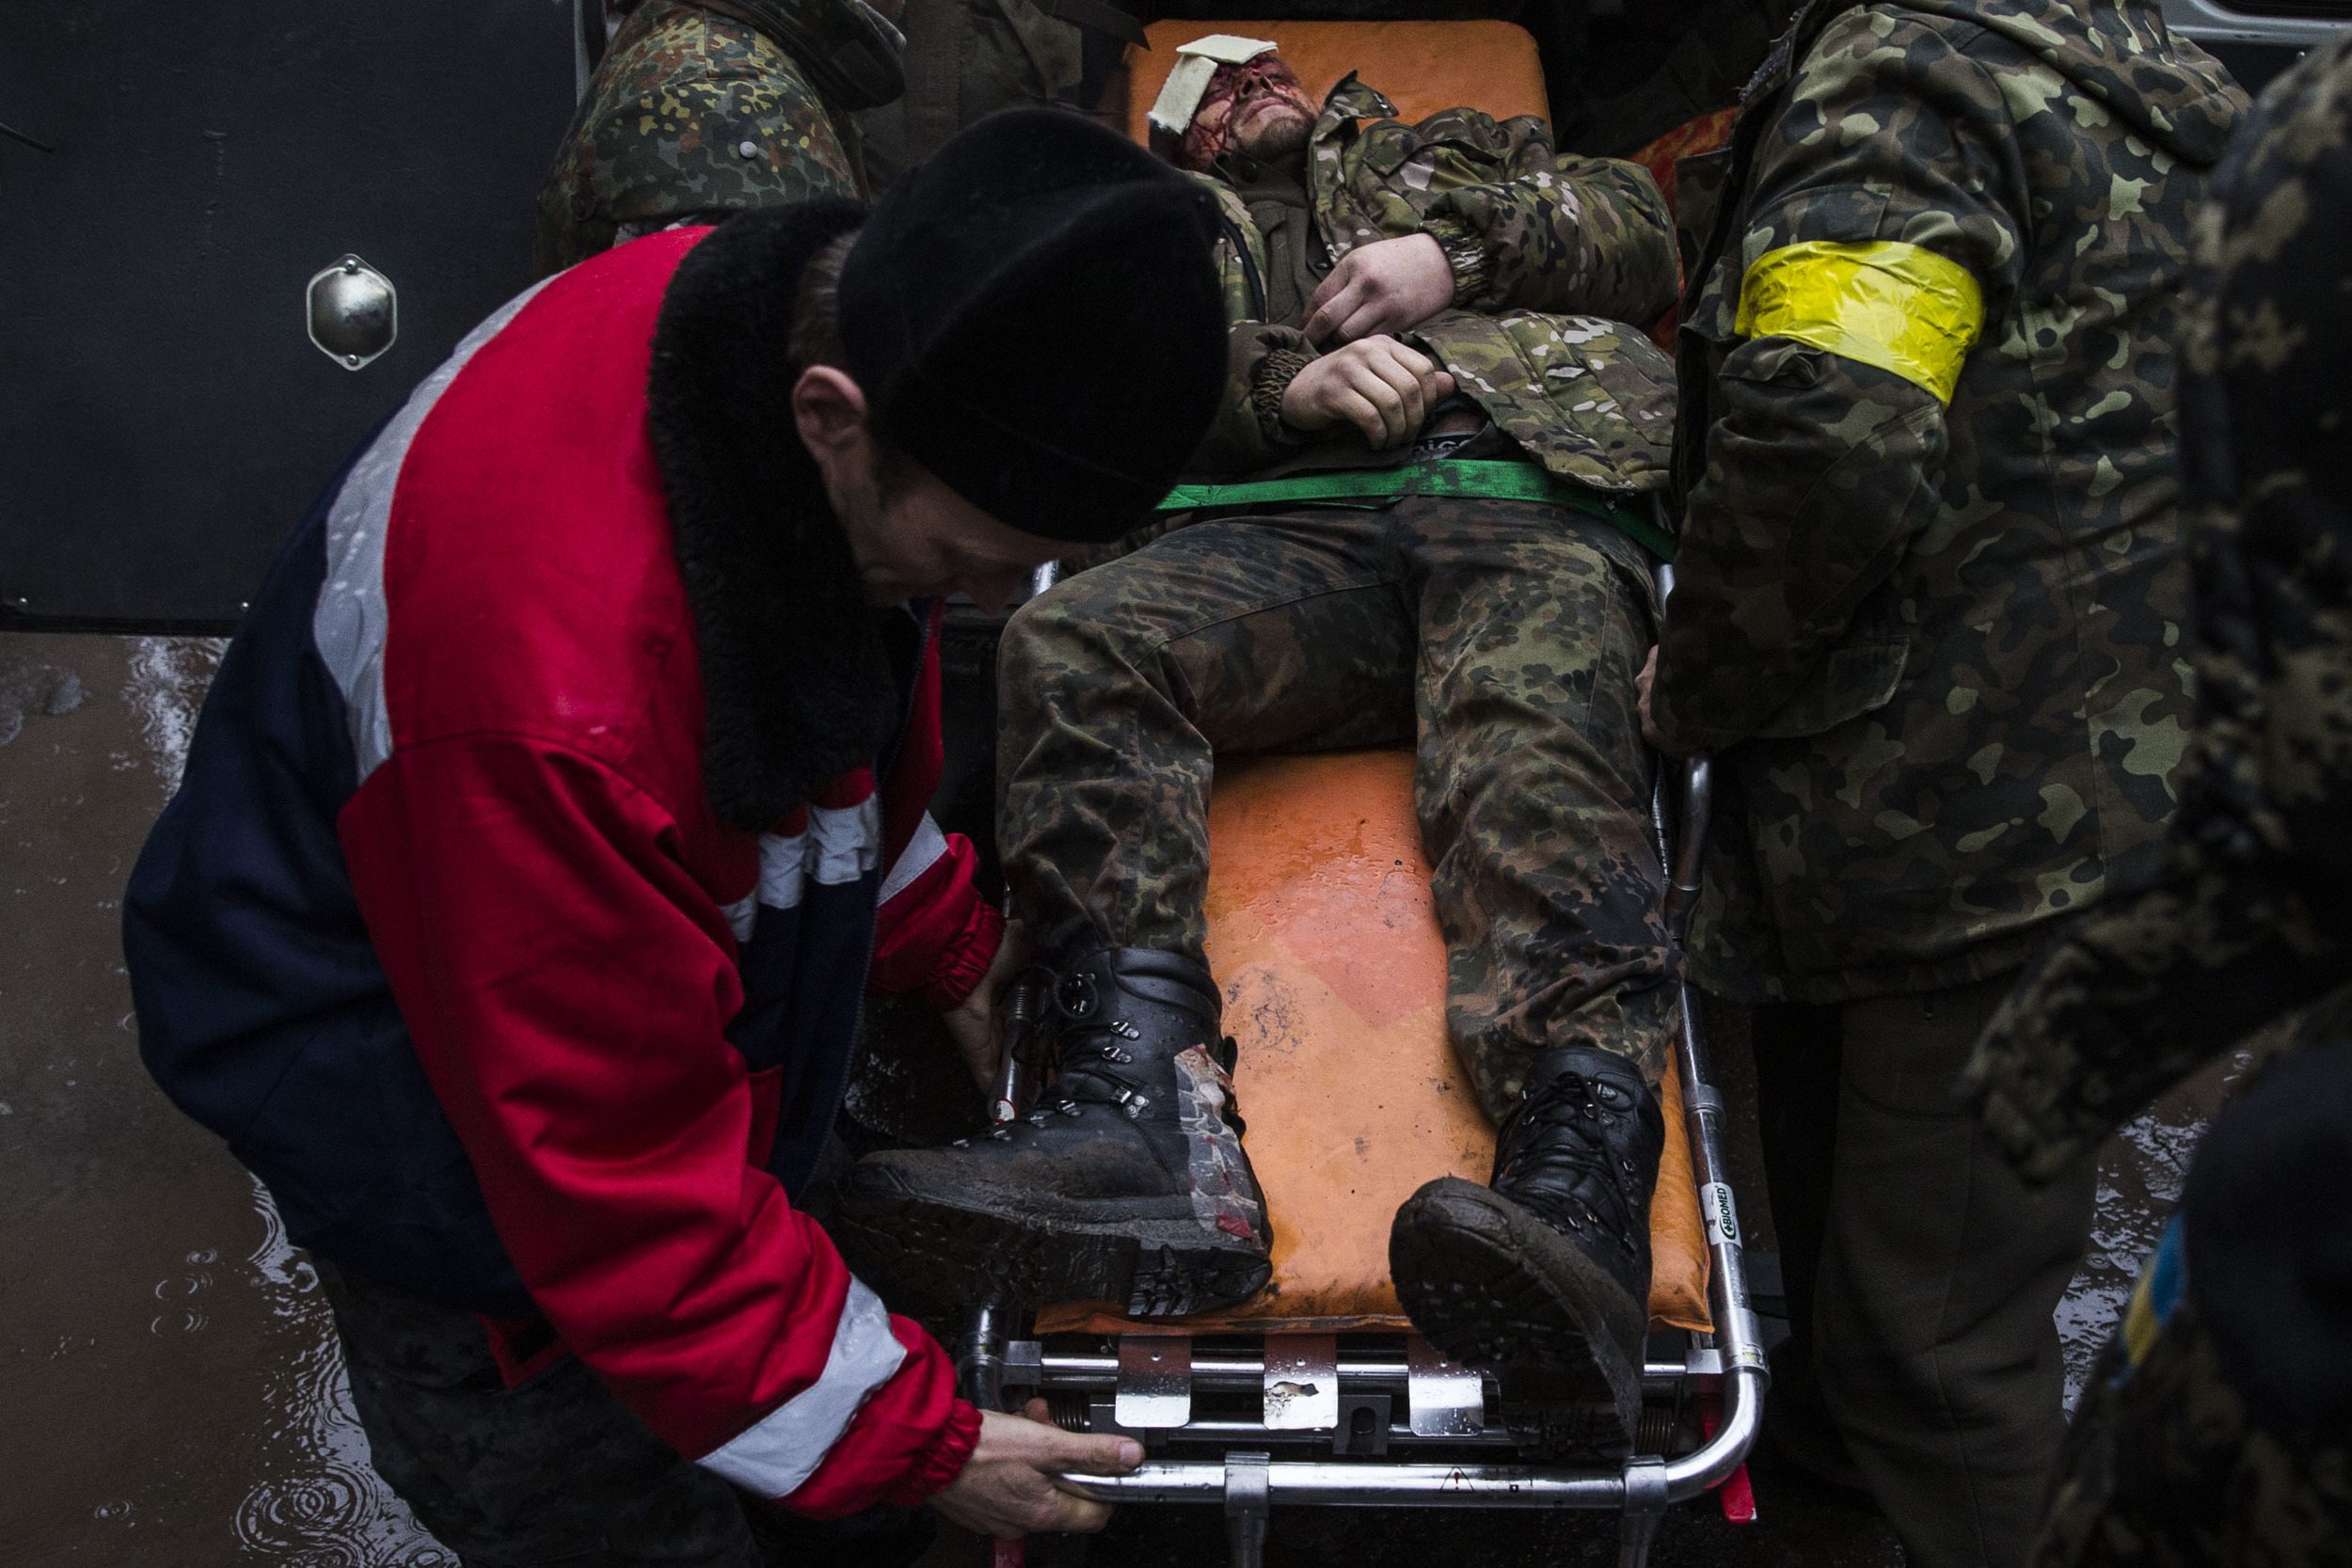 Ukrainian soldier is seen wounded as he is transferred to the hospital after fights in Debaltsevo area